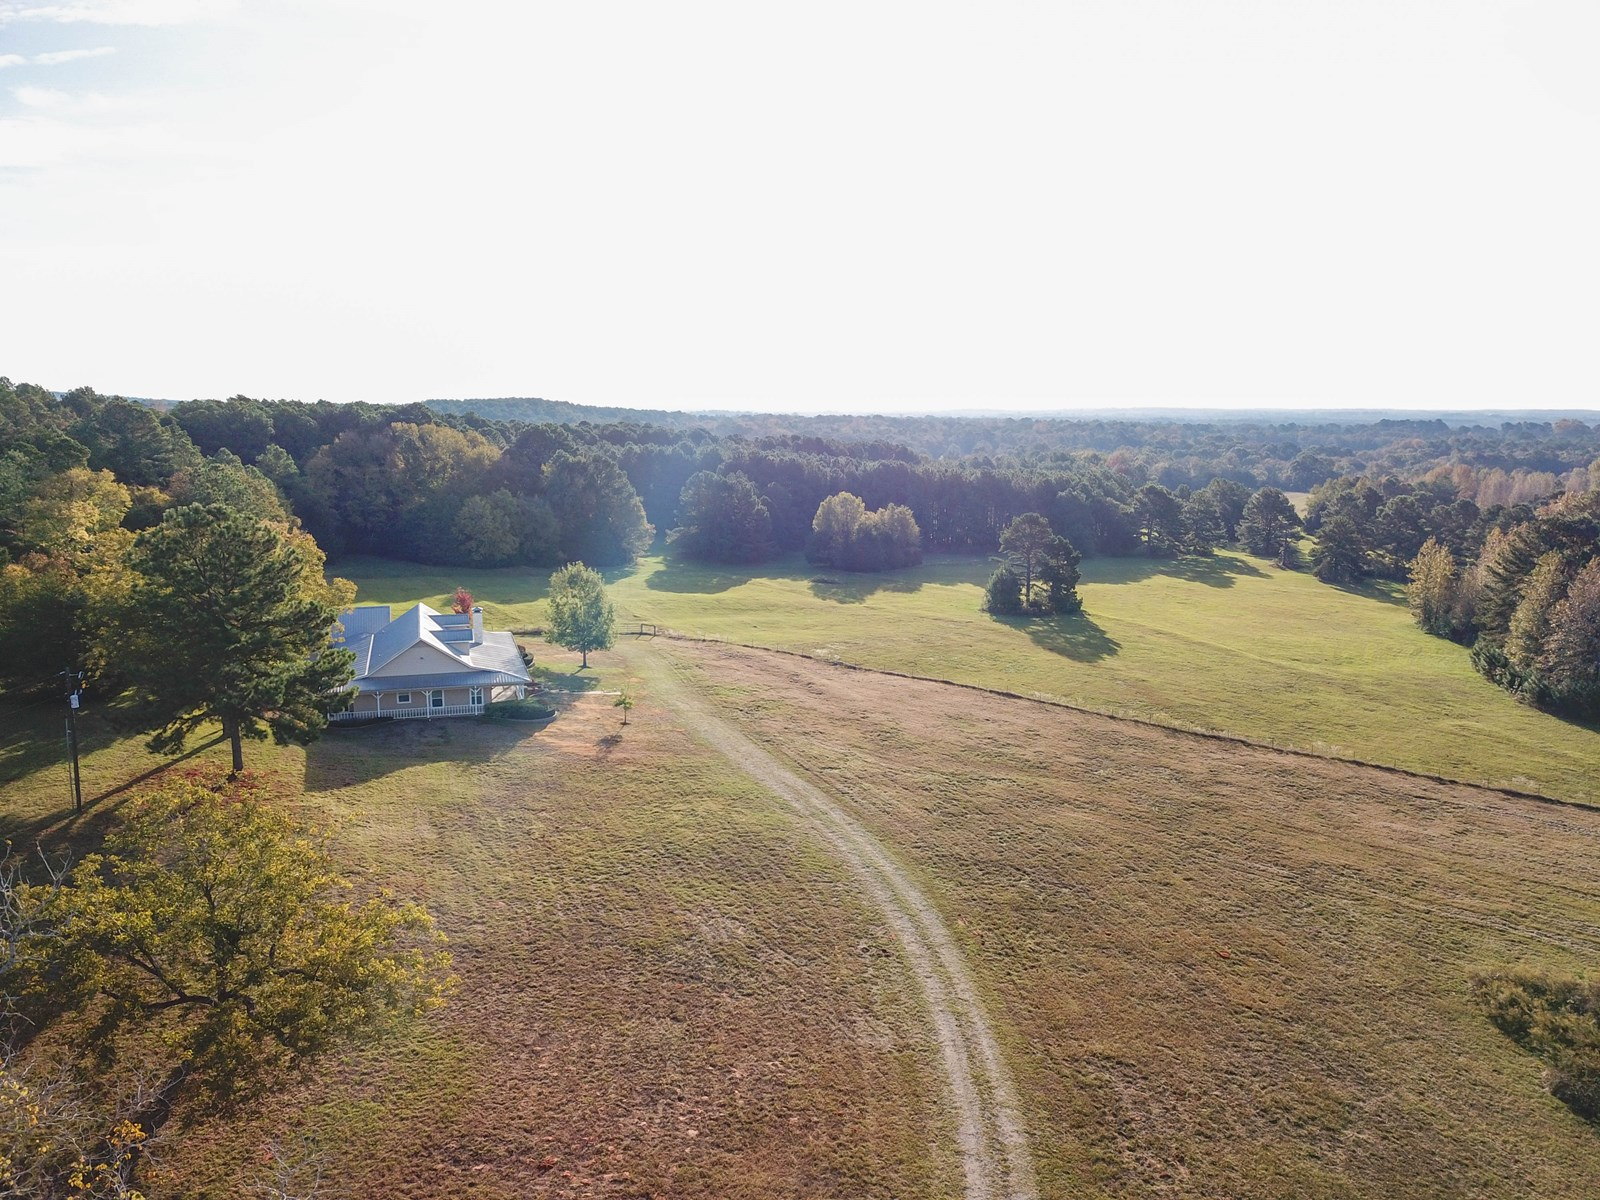 STARR HILL RANCH | IDEAL RETIREMENT RANCH OR FAMILY FARM